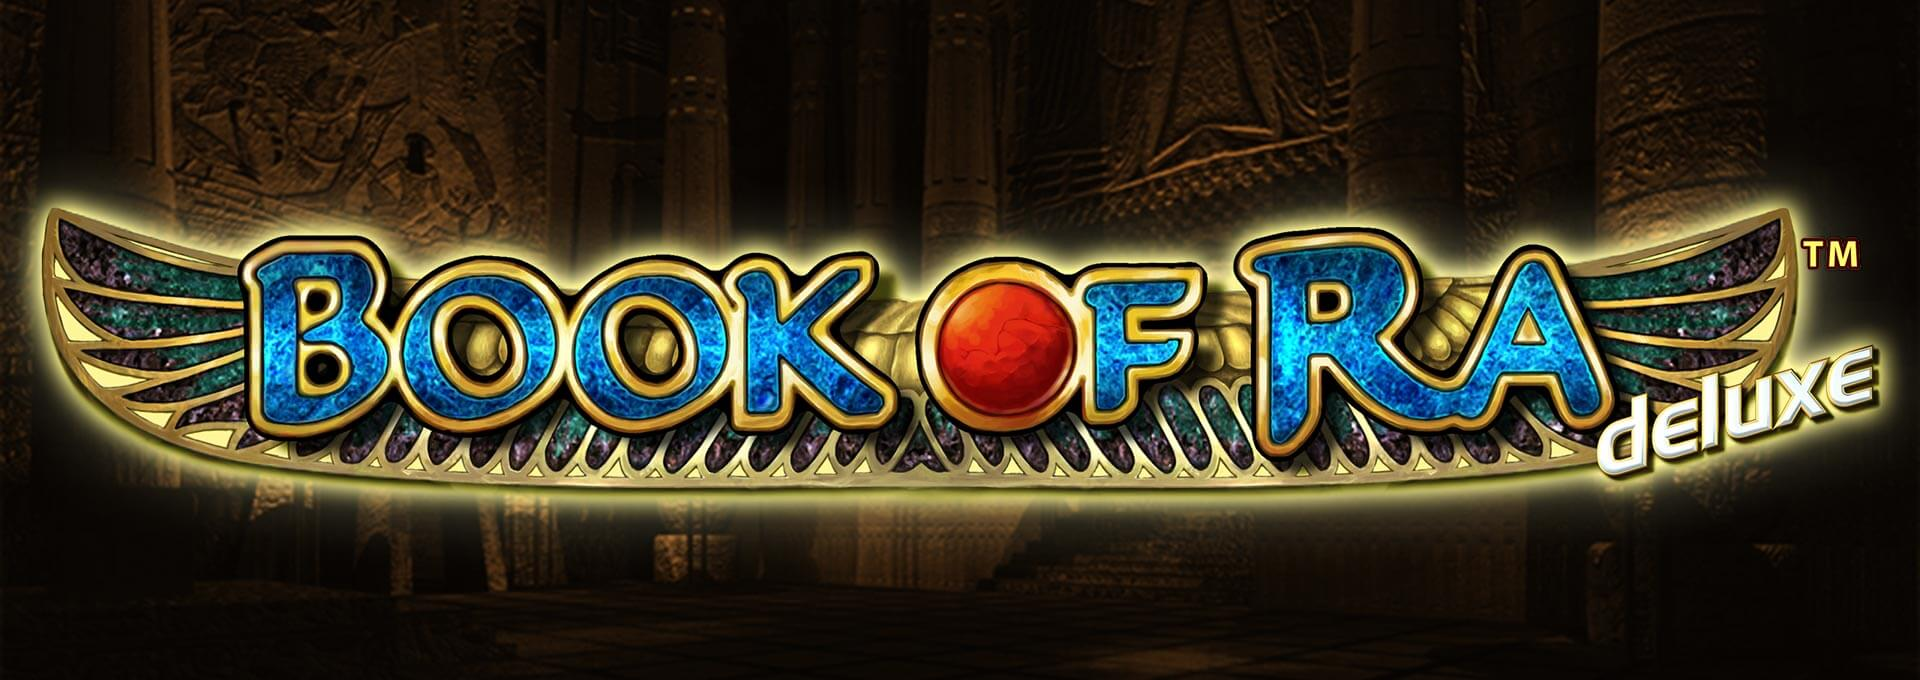 online casino startguthaben book of ra deluxe free download